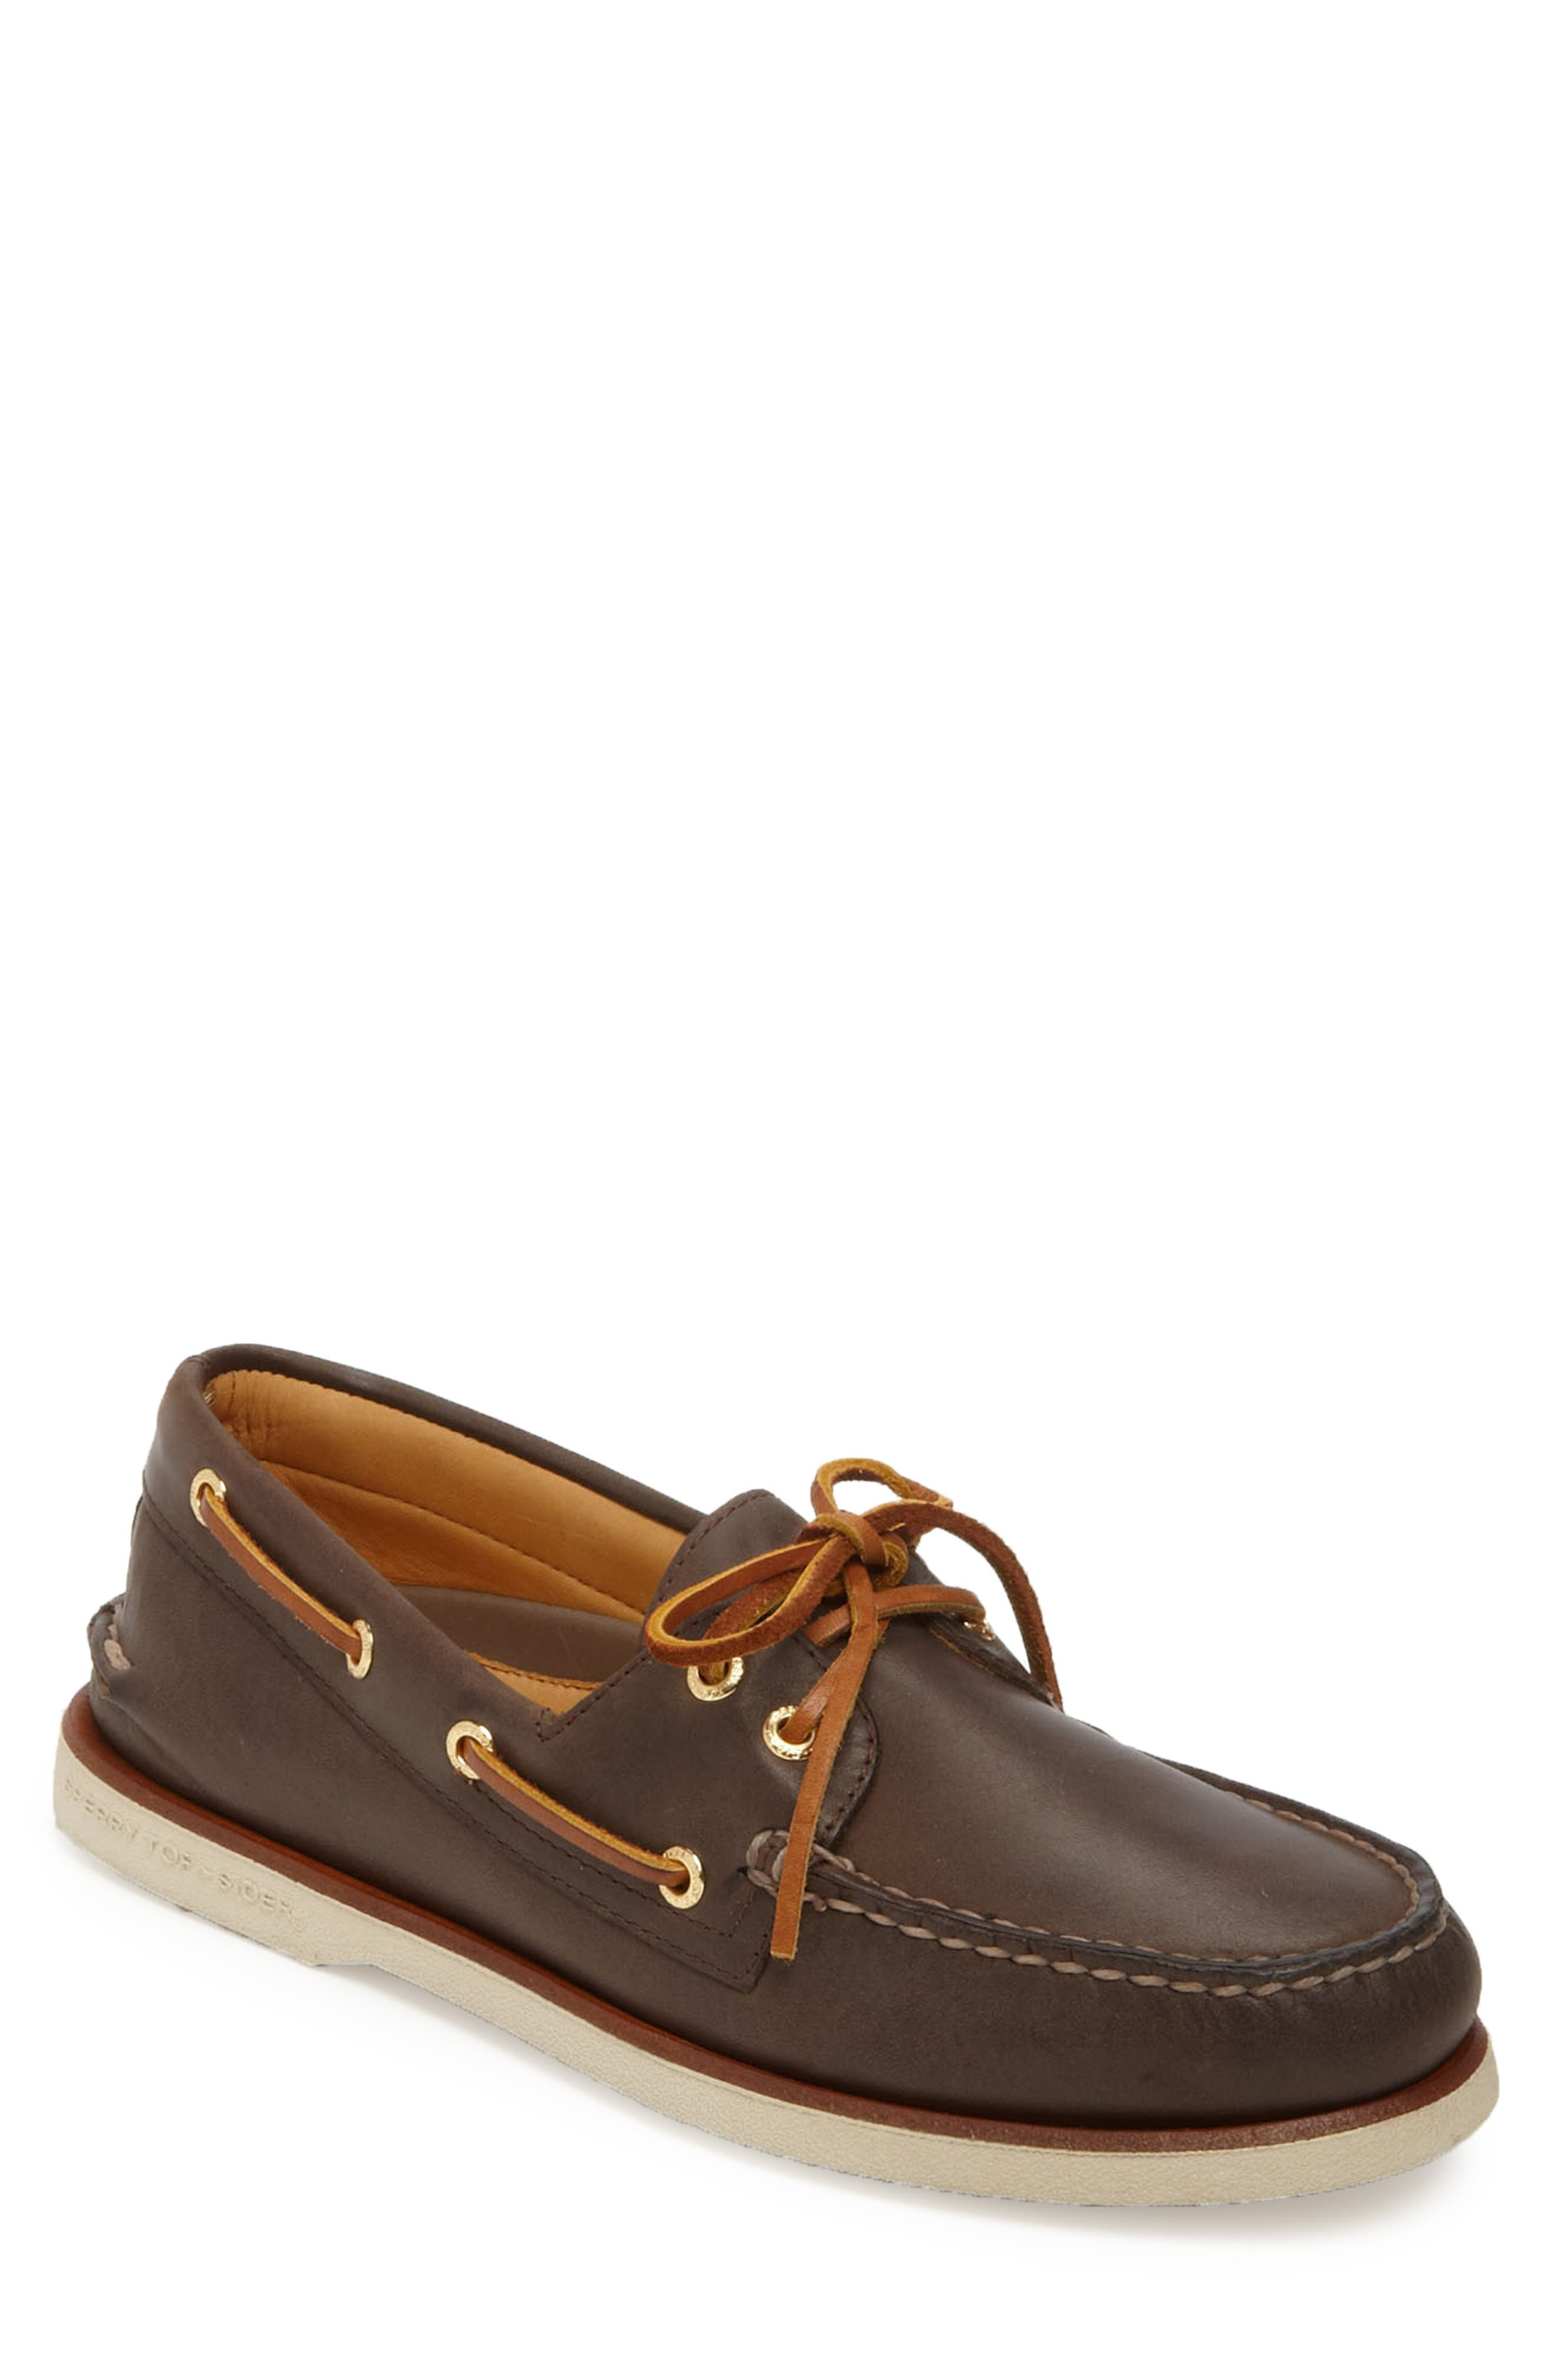 'Gold Cup - Authentic Original' Boat Shoe,                             Main thumbnail 1, color,                             DARK BROWN LEATHER